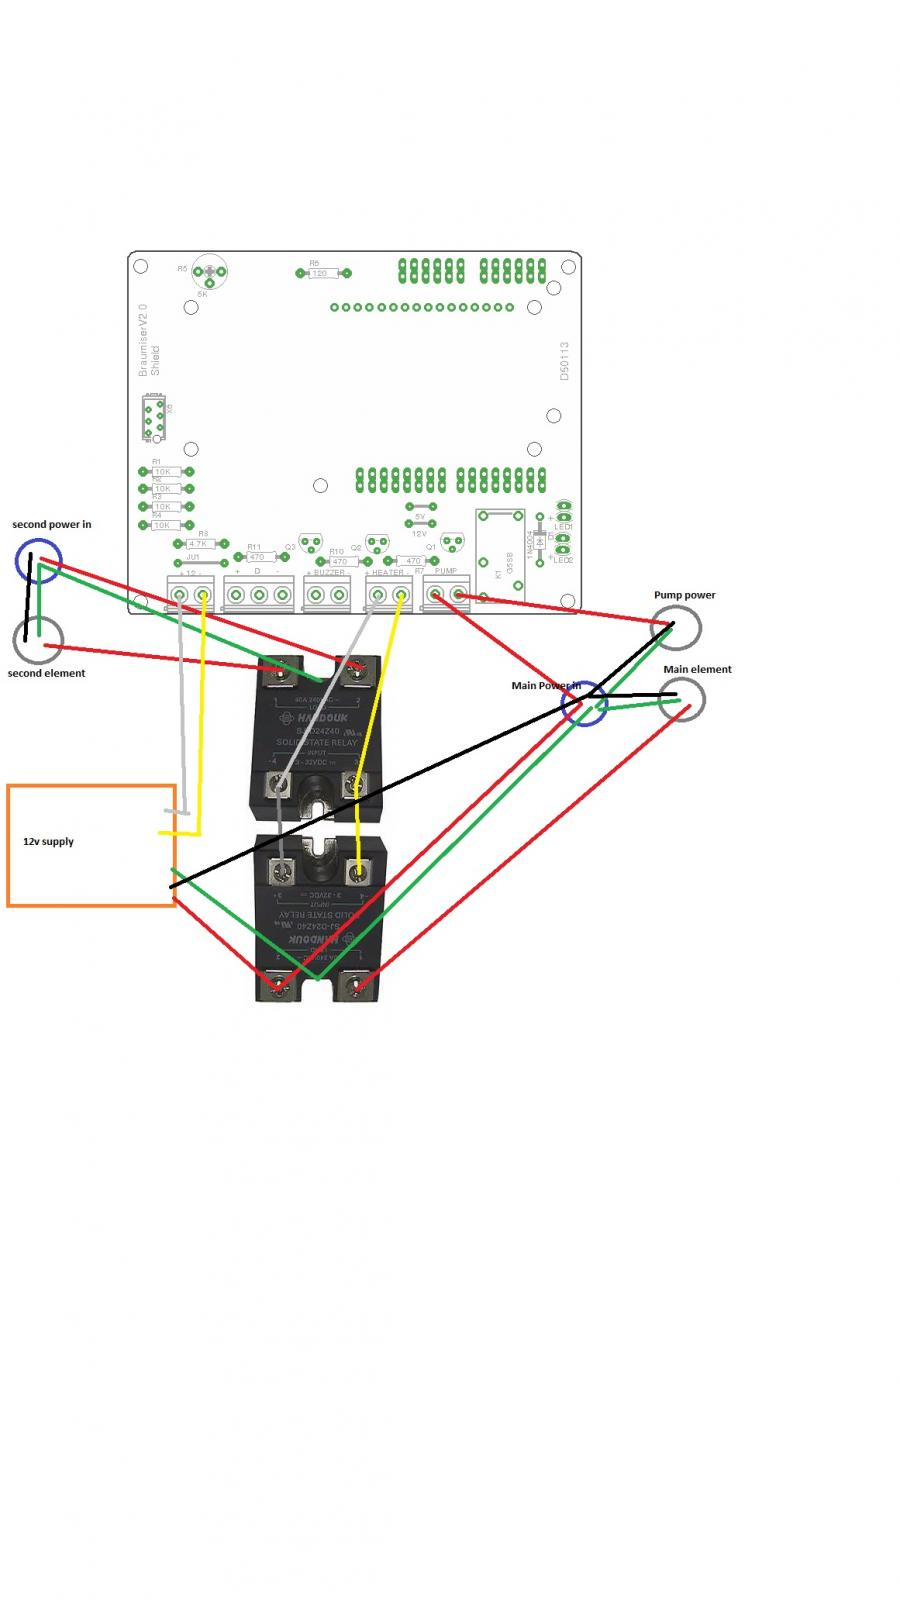 powercon wiring diagram best wiring diagram and letter osram wiring diagram nice powercon wiring diagram mold best images for